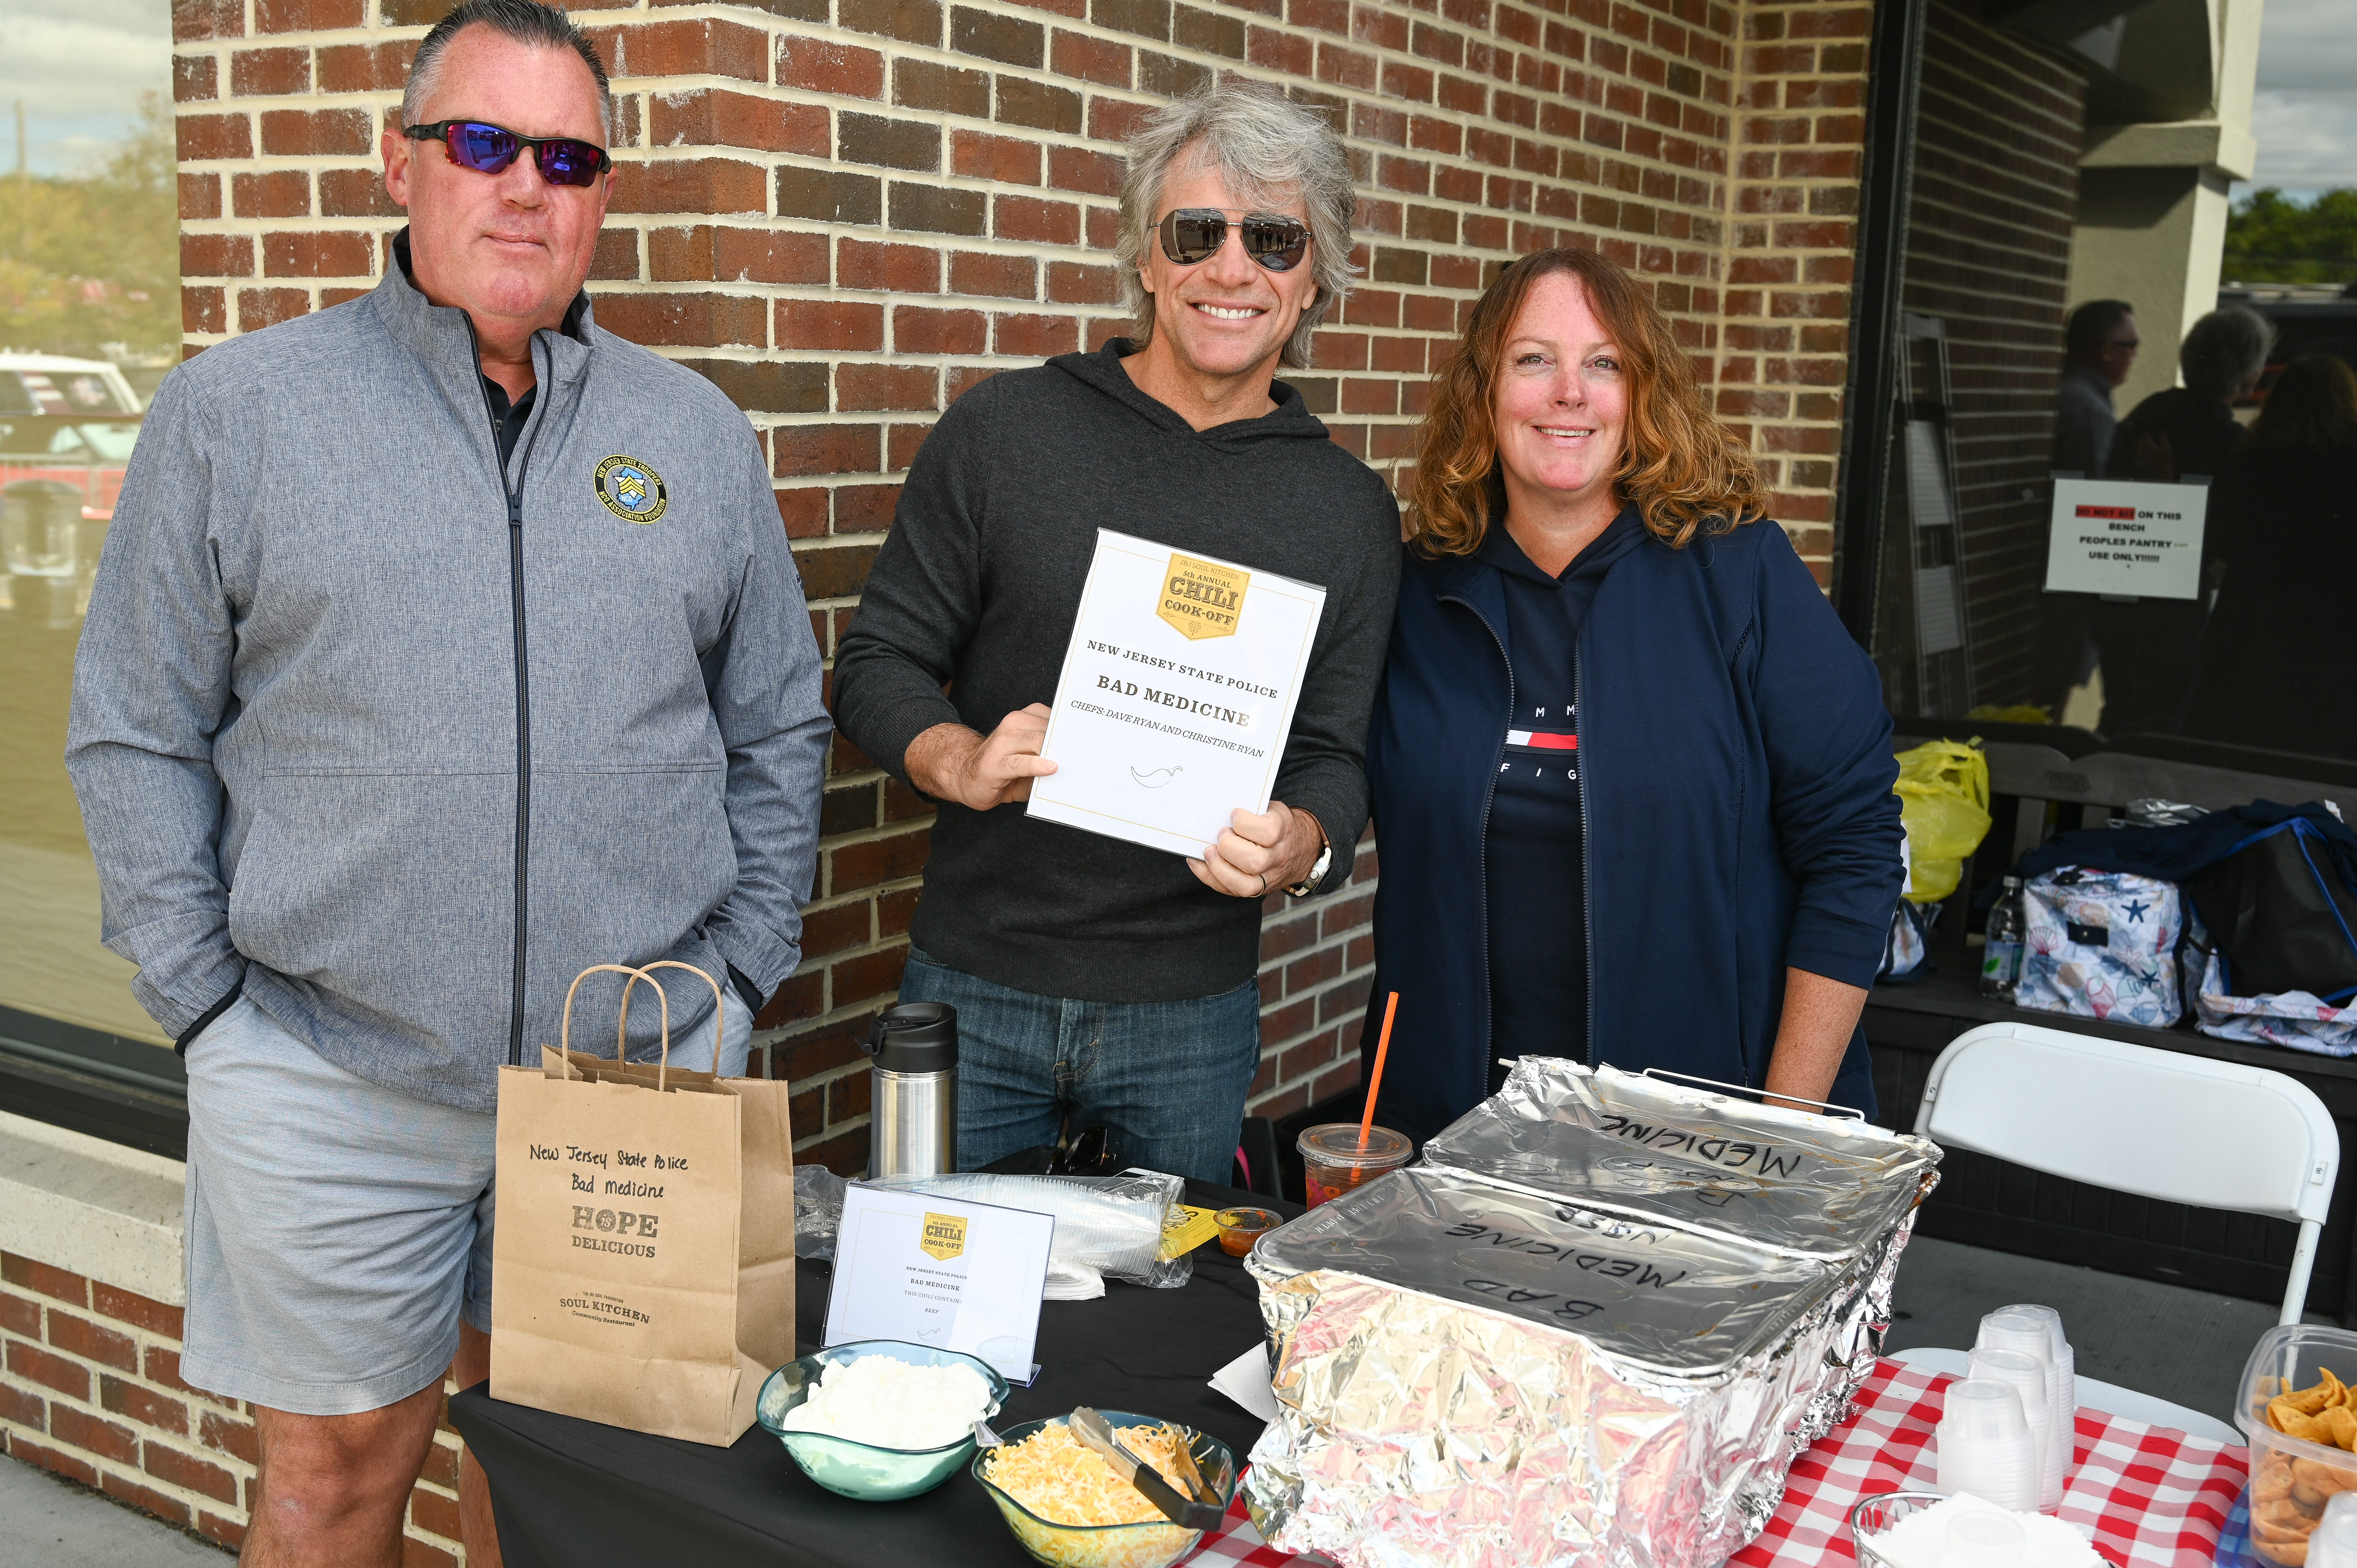 Bon Jovi Helps Judge The Toms River Soul Kitchen Chili Cook Off For State First Responders